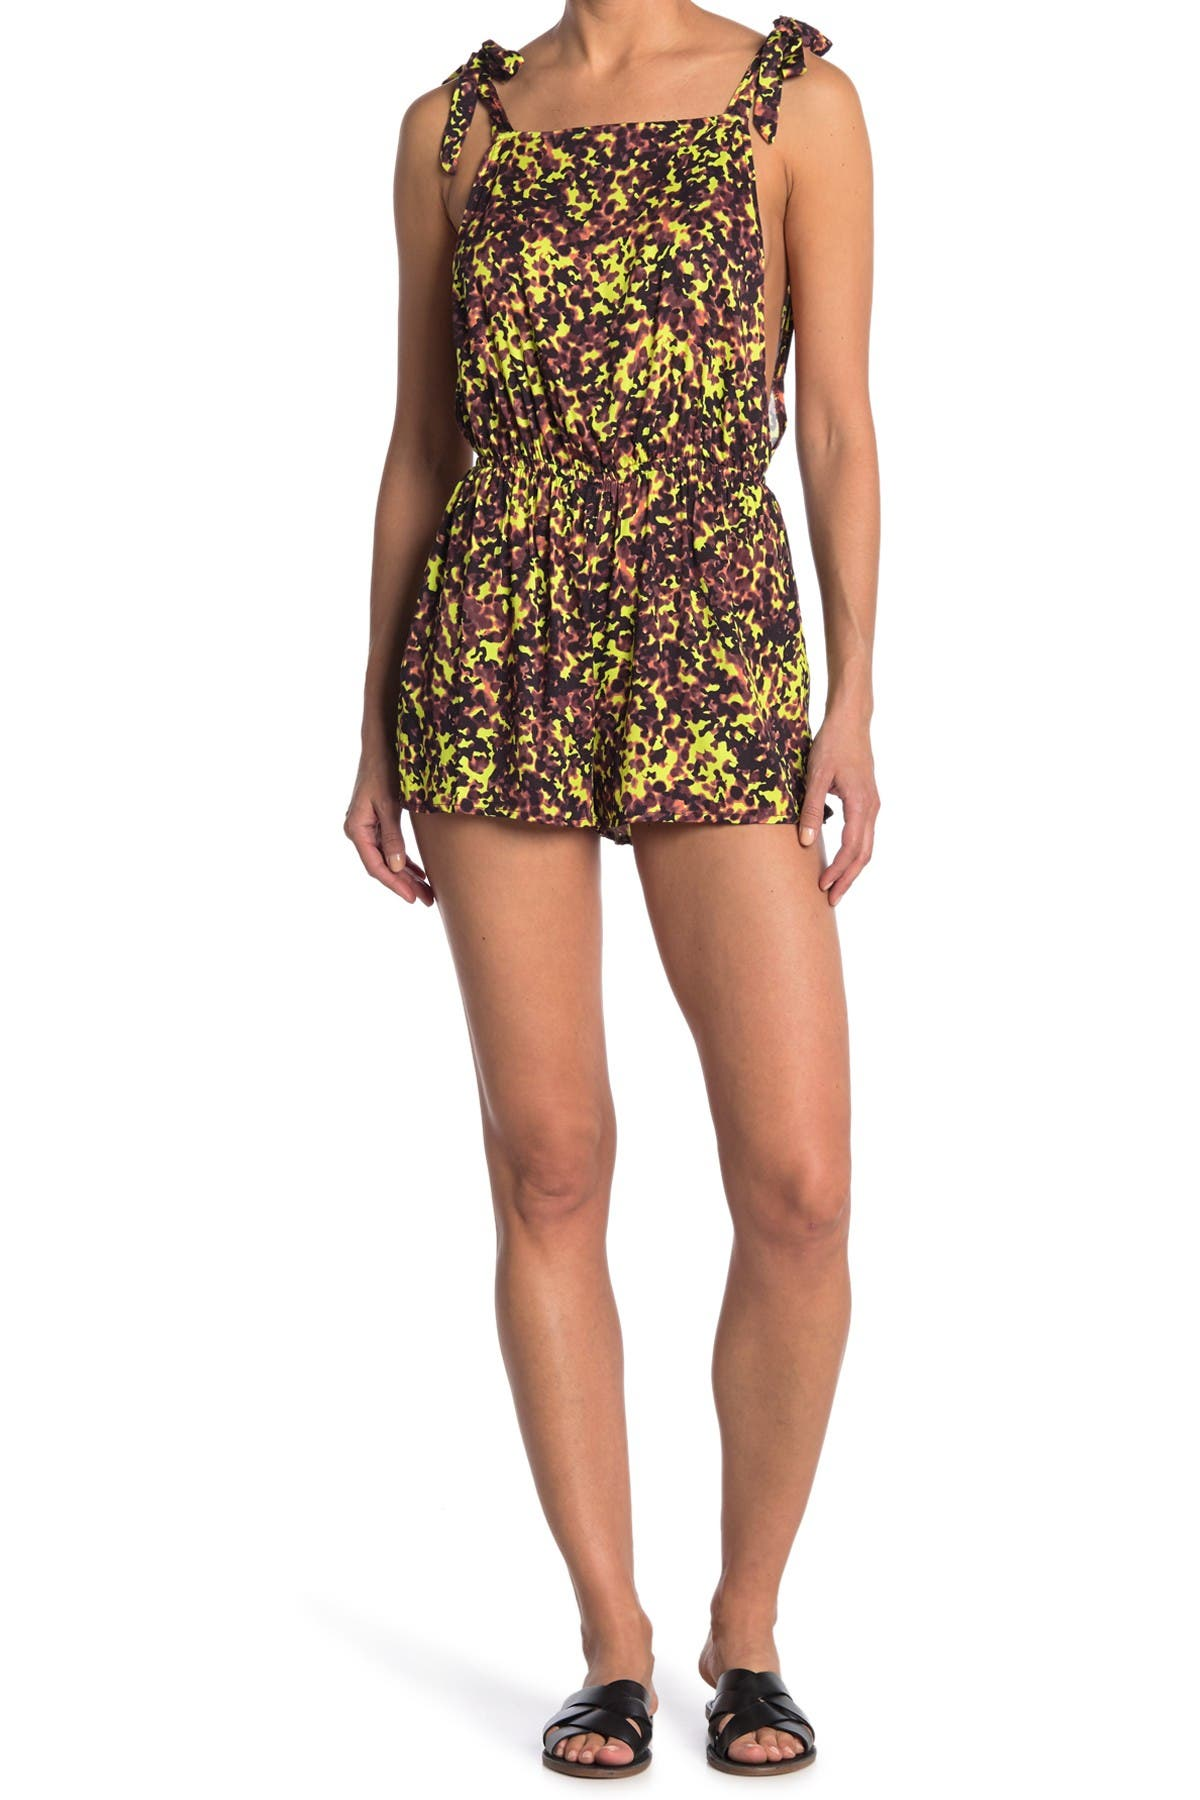 Image of The Bikini Lab Hyp Animal Print Cover-Up Romper